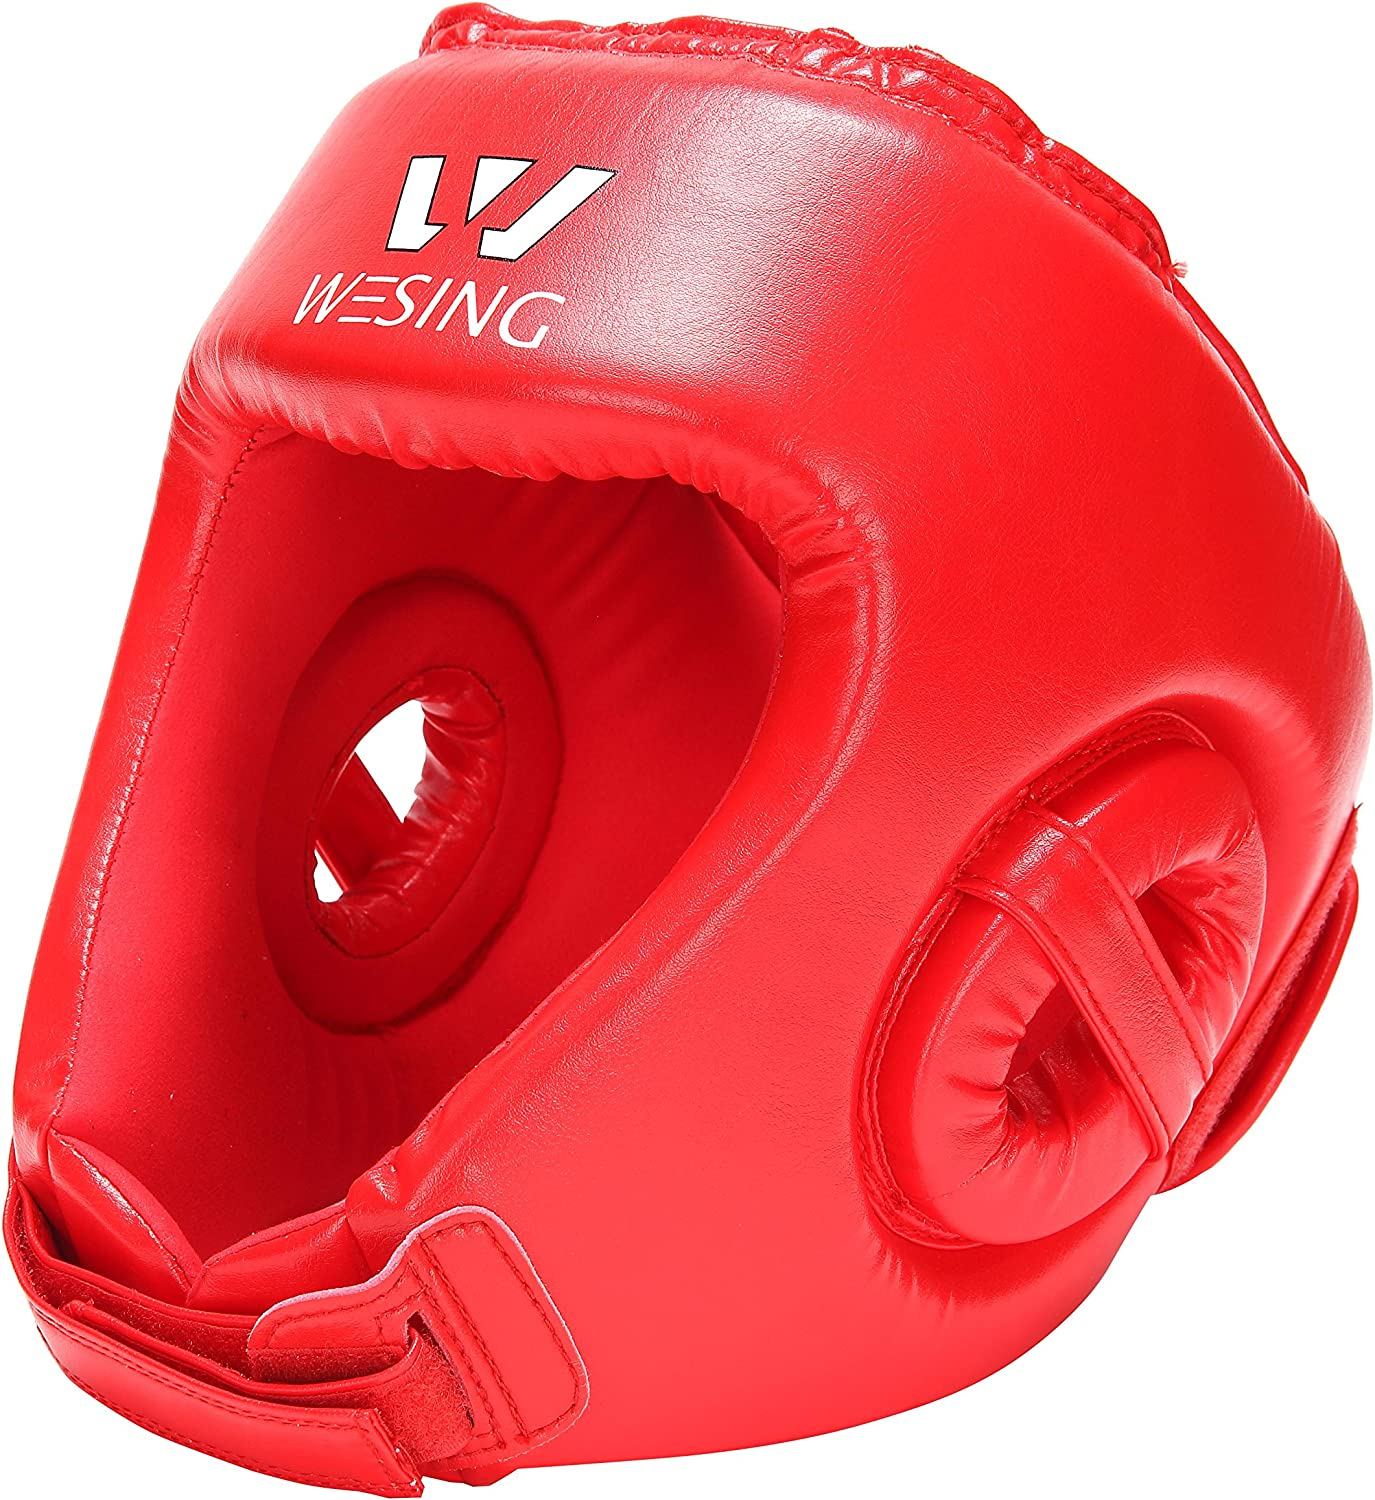 wesing Professional Boxing Muay Thai Martial Arts Training Sparing Headgear Without Cheeks by